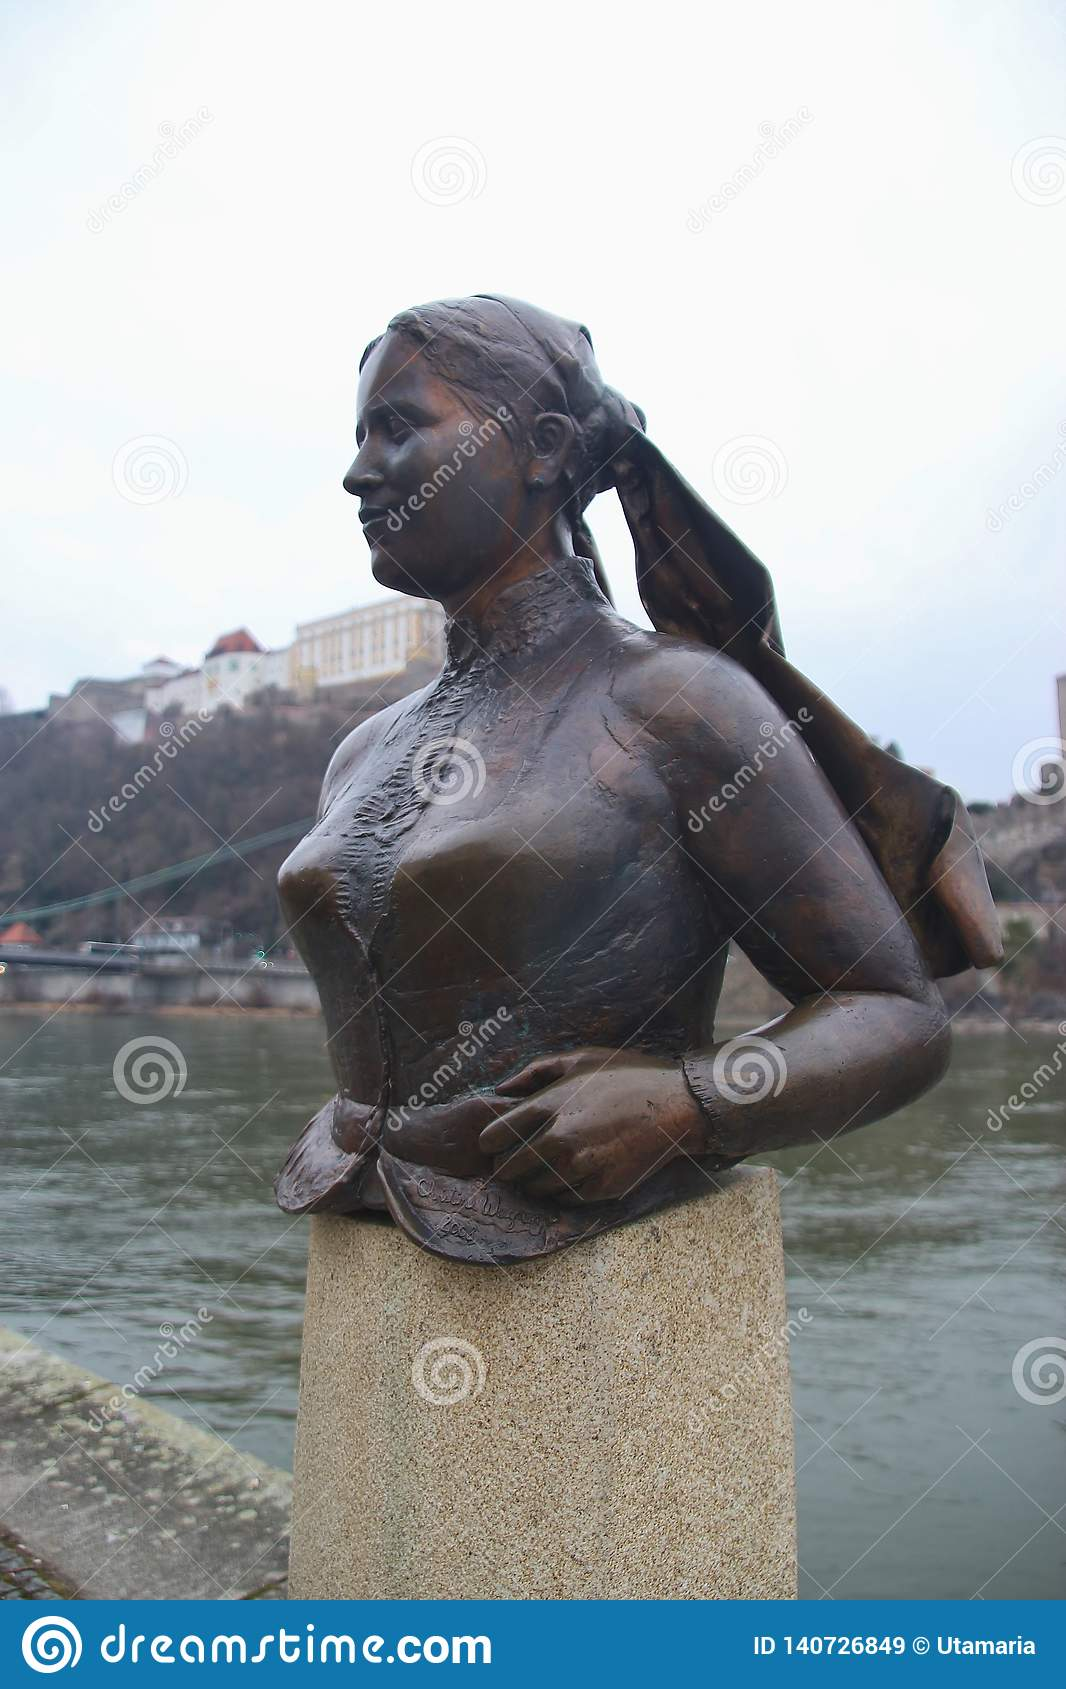 Bust of the poet and landlady Emerenz Meier on the quay of the Danube river in Passau, Germany.